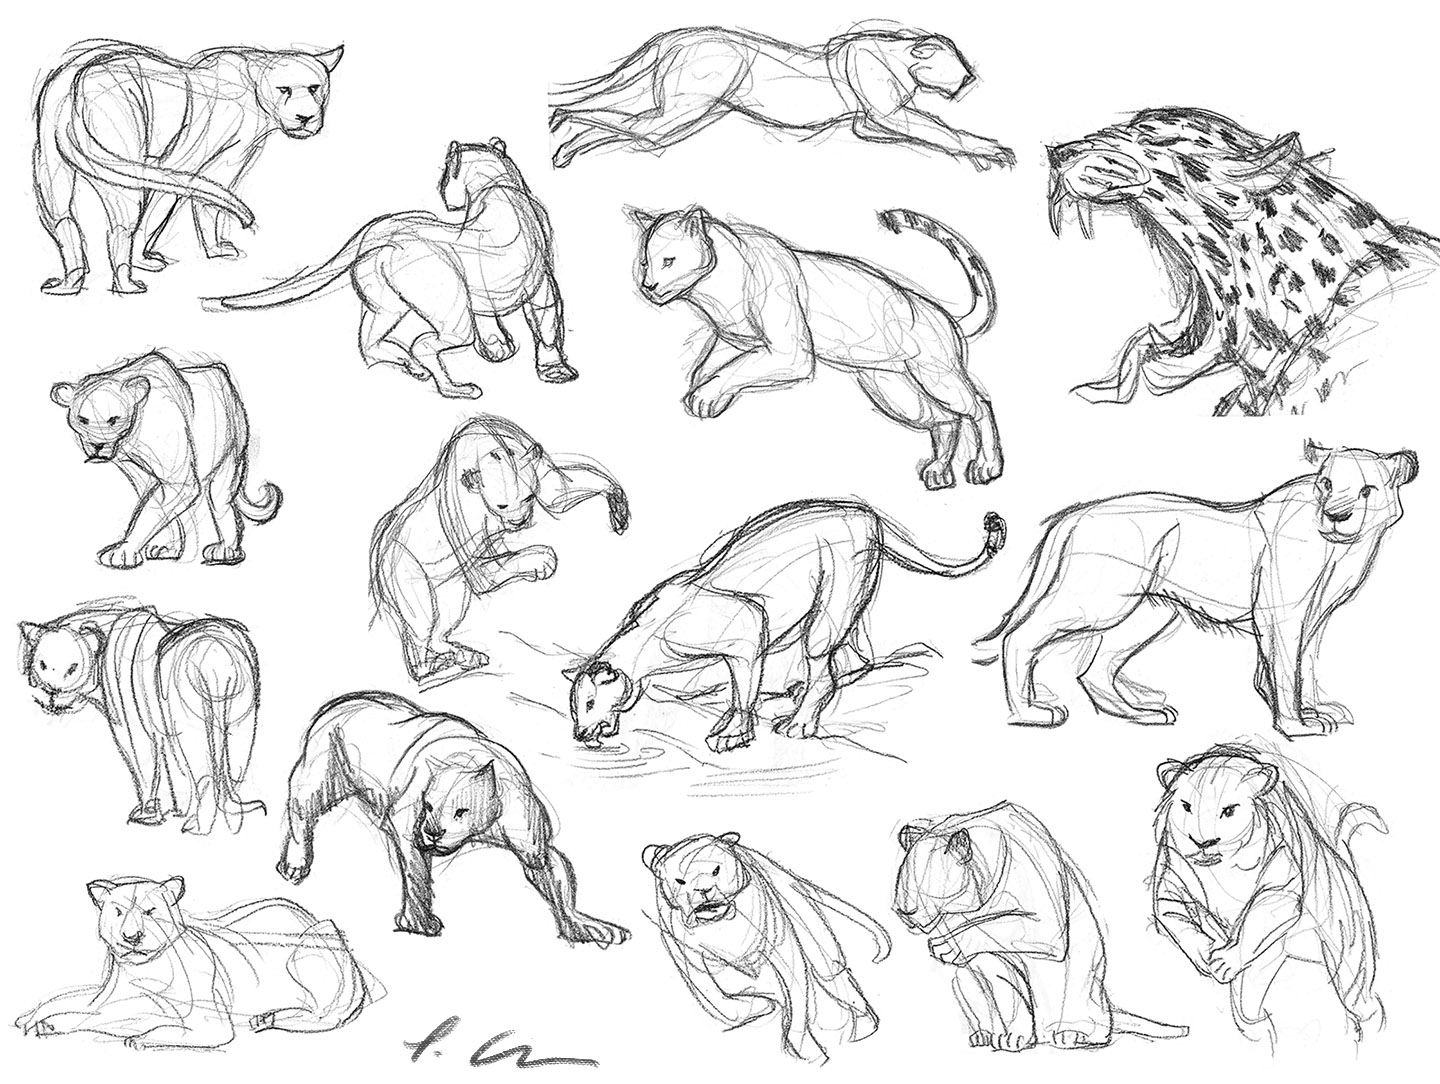 1440x1084 Big Cats' Gesture Drawings How To's And References!